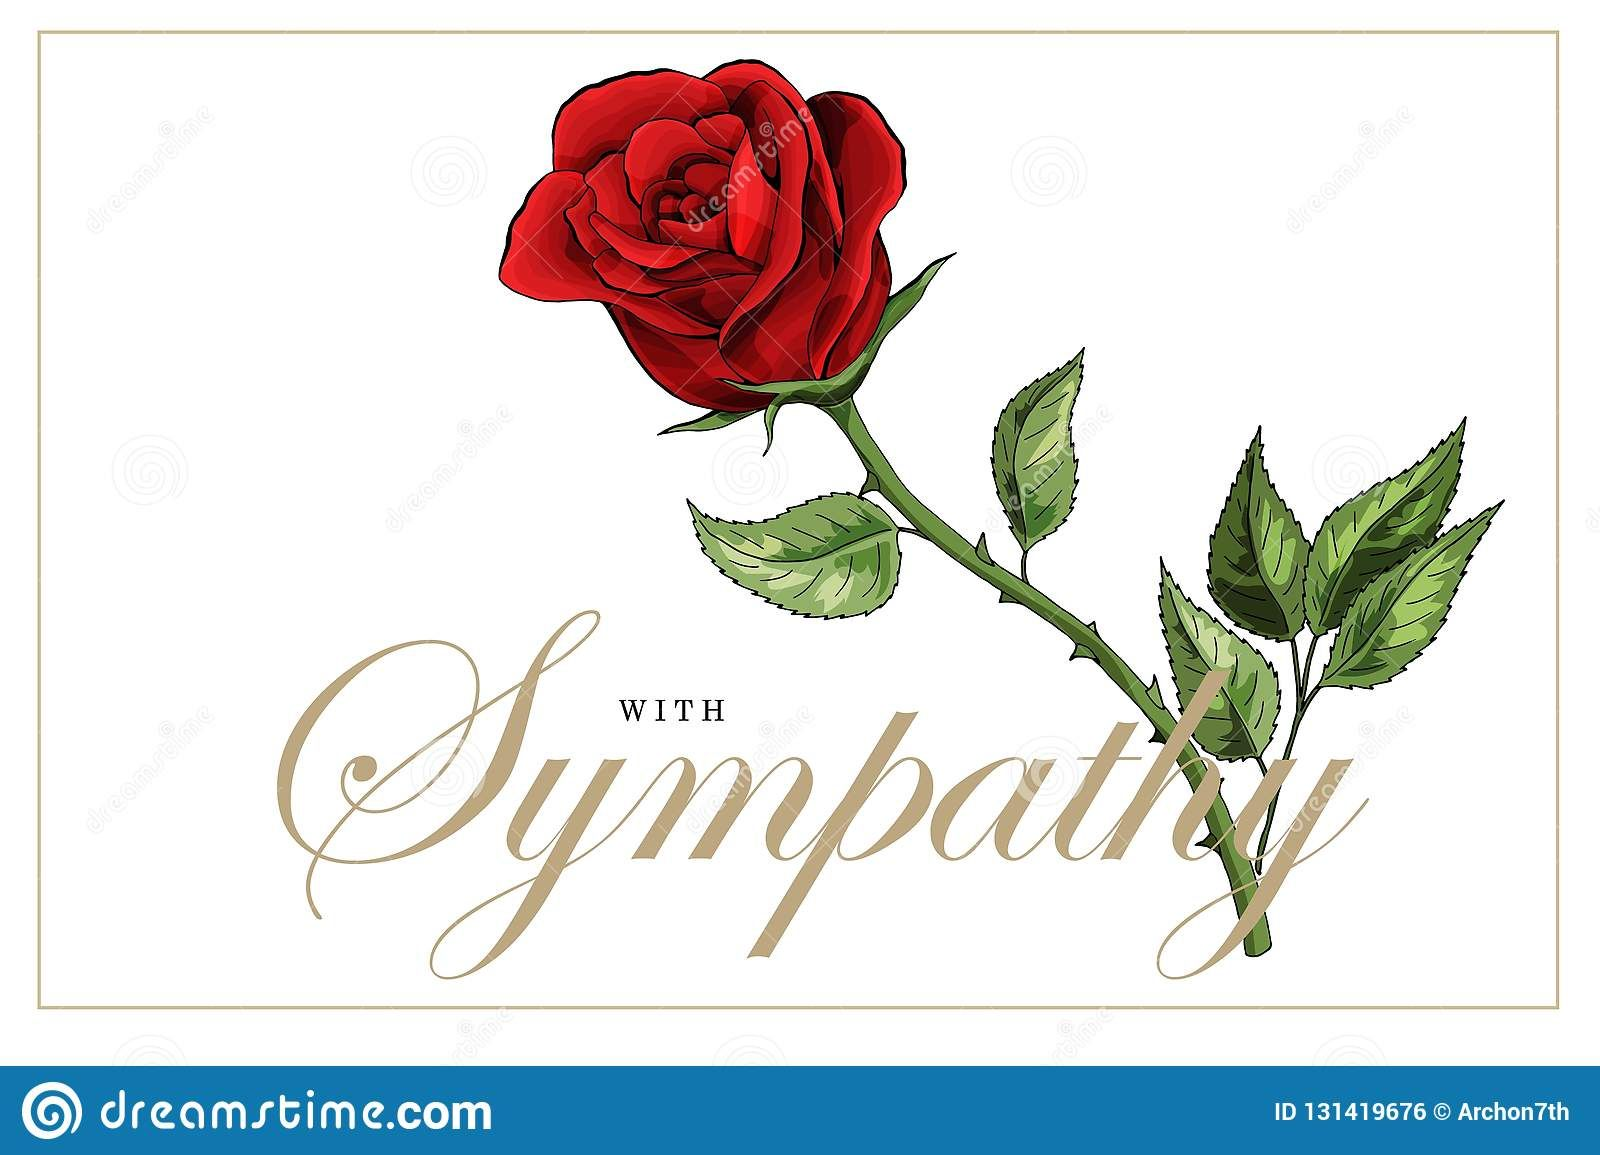 Condolences Sympathy Card Floral Red Roses Bouquet And Intended For Sorry For Your Loss Card Template Professio Sympathy Cards Red Rose Bouquet Card Template